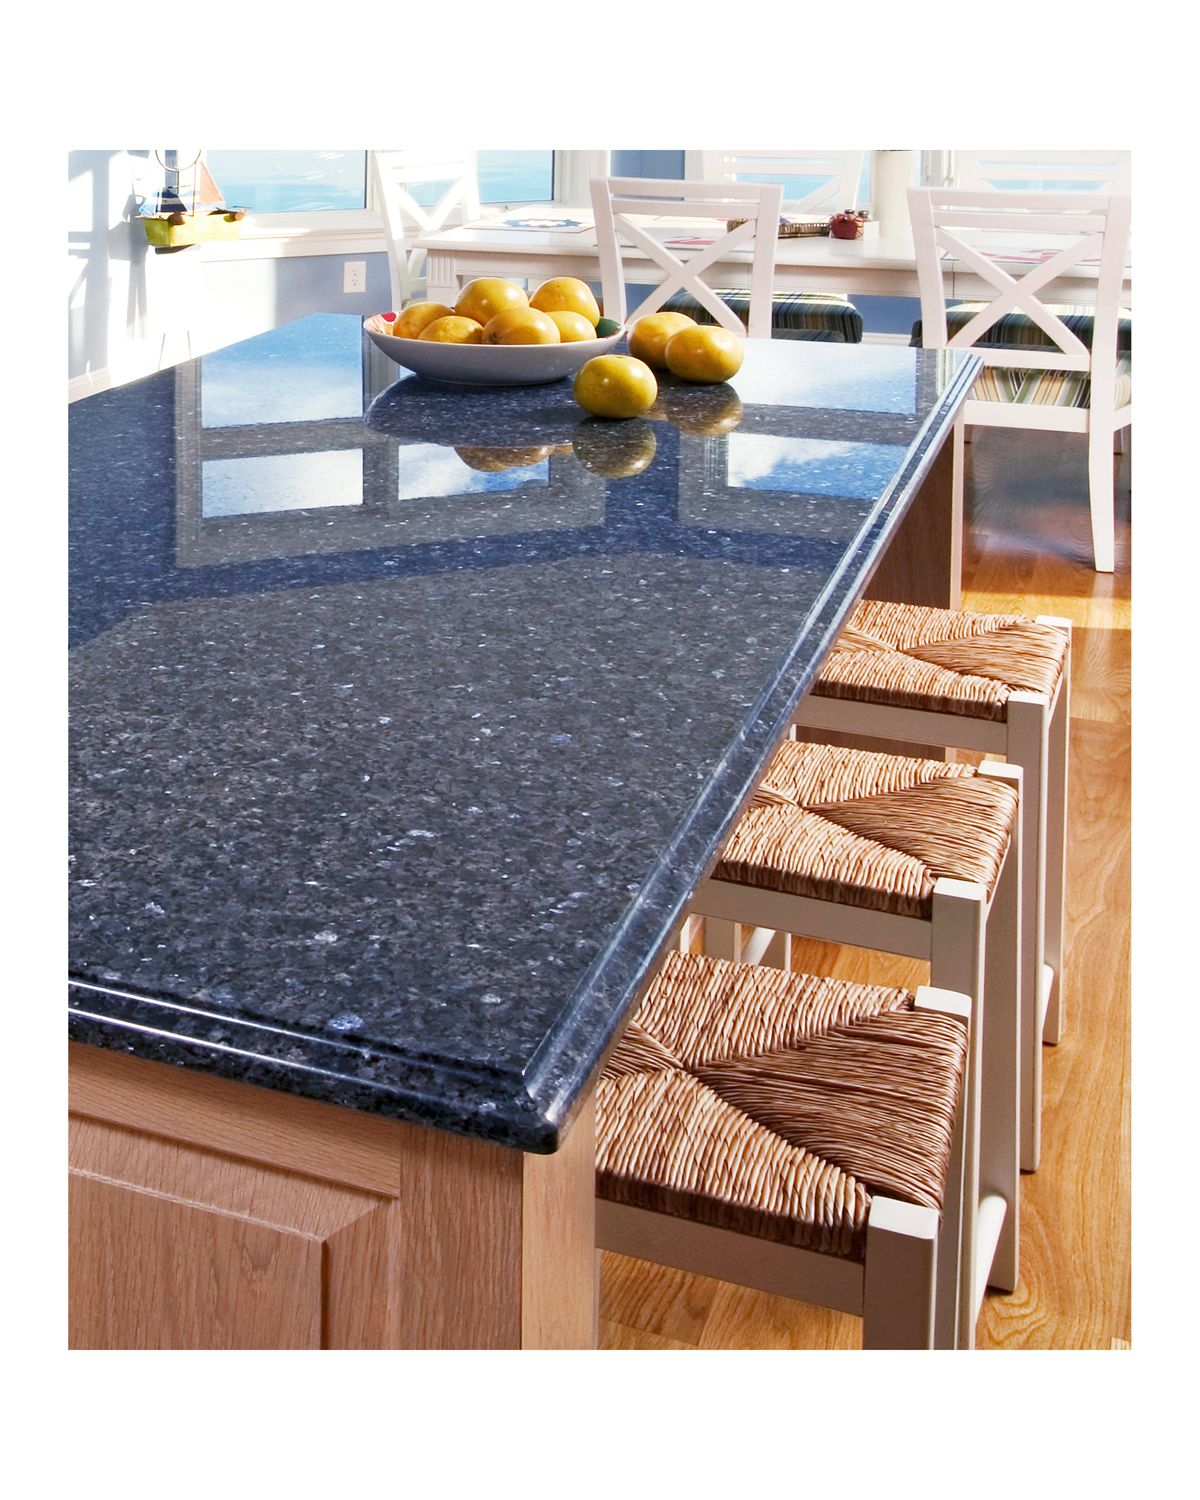 kitchen countertops blue countertops for kitchens Beautiful Blue Kitchen Countertops Capitol Granite